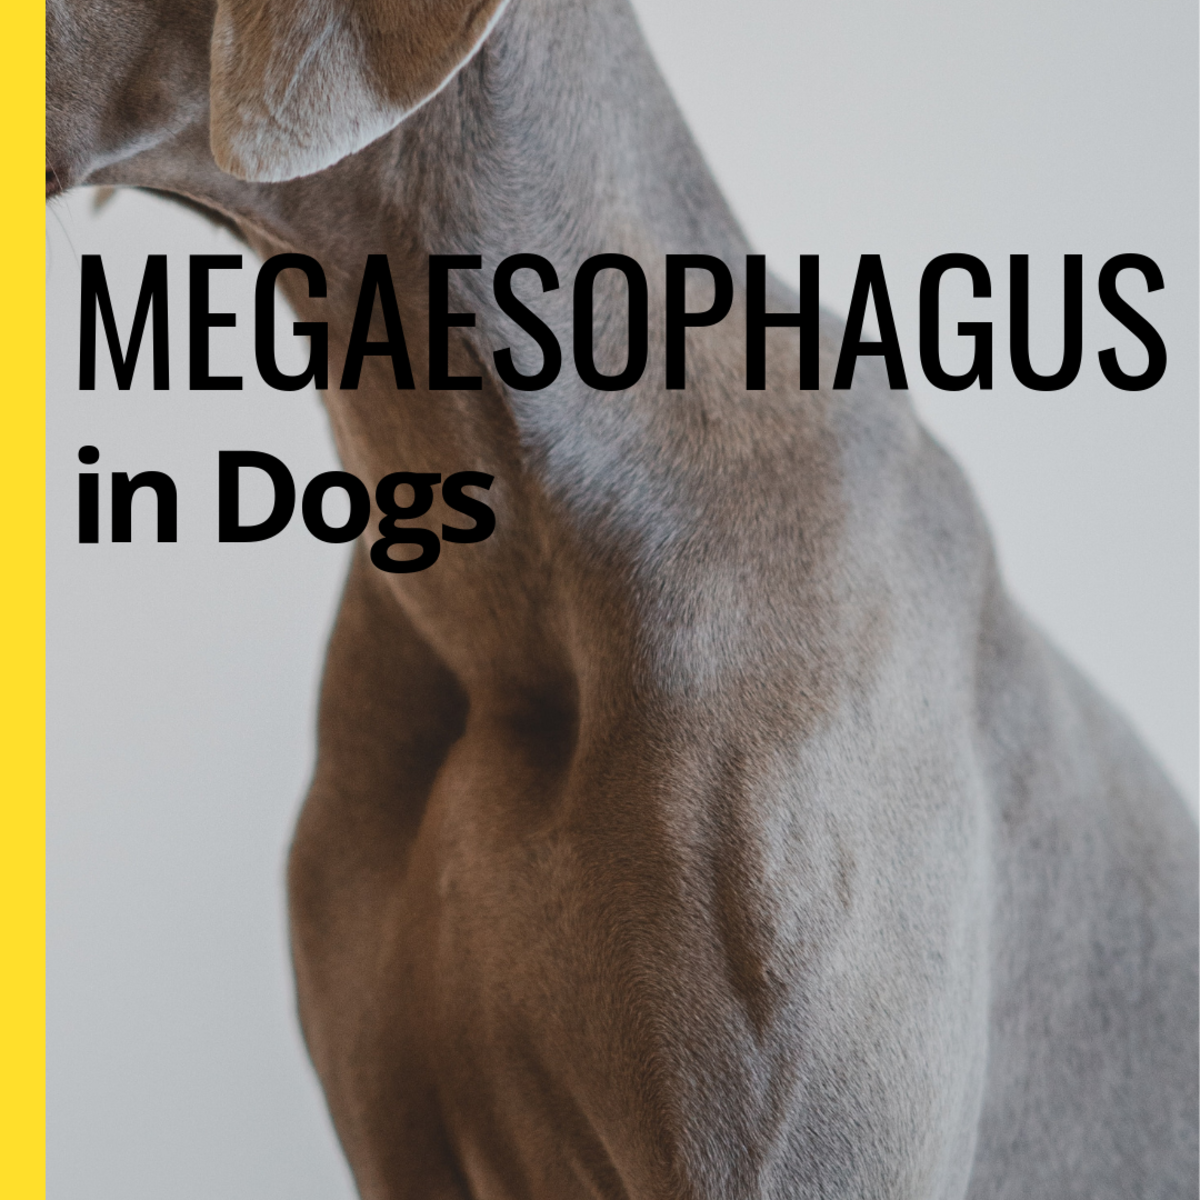 The Best Foods for Dogs With Megaesophagus